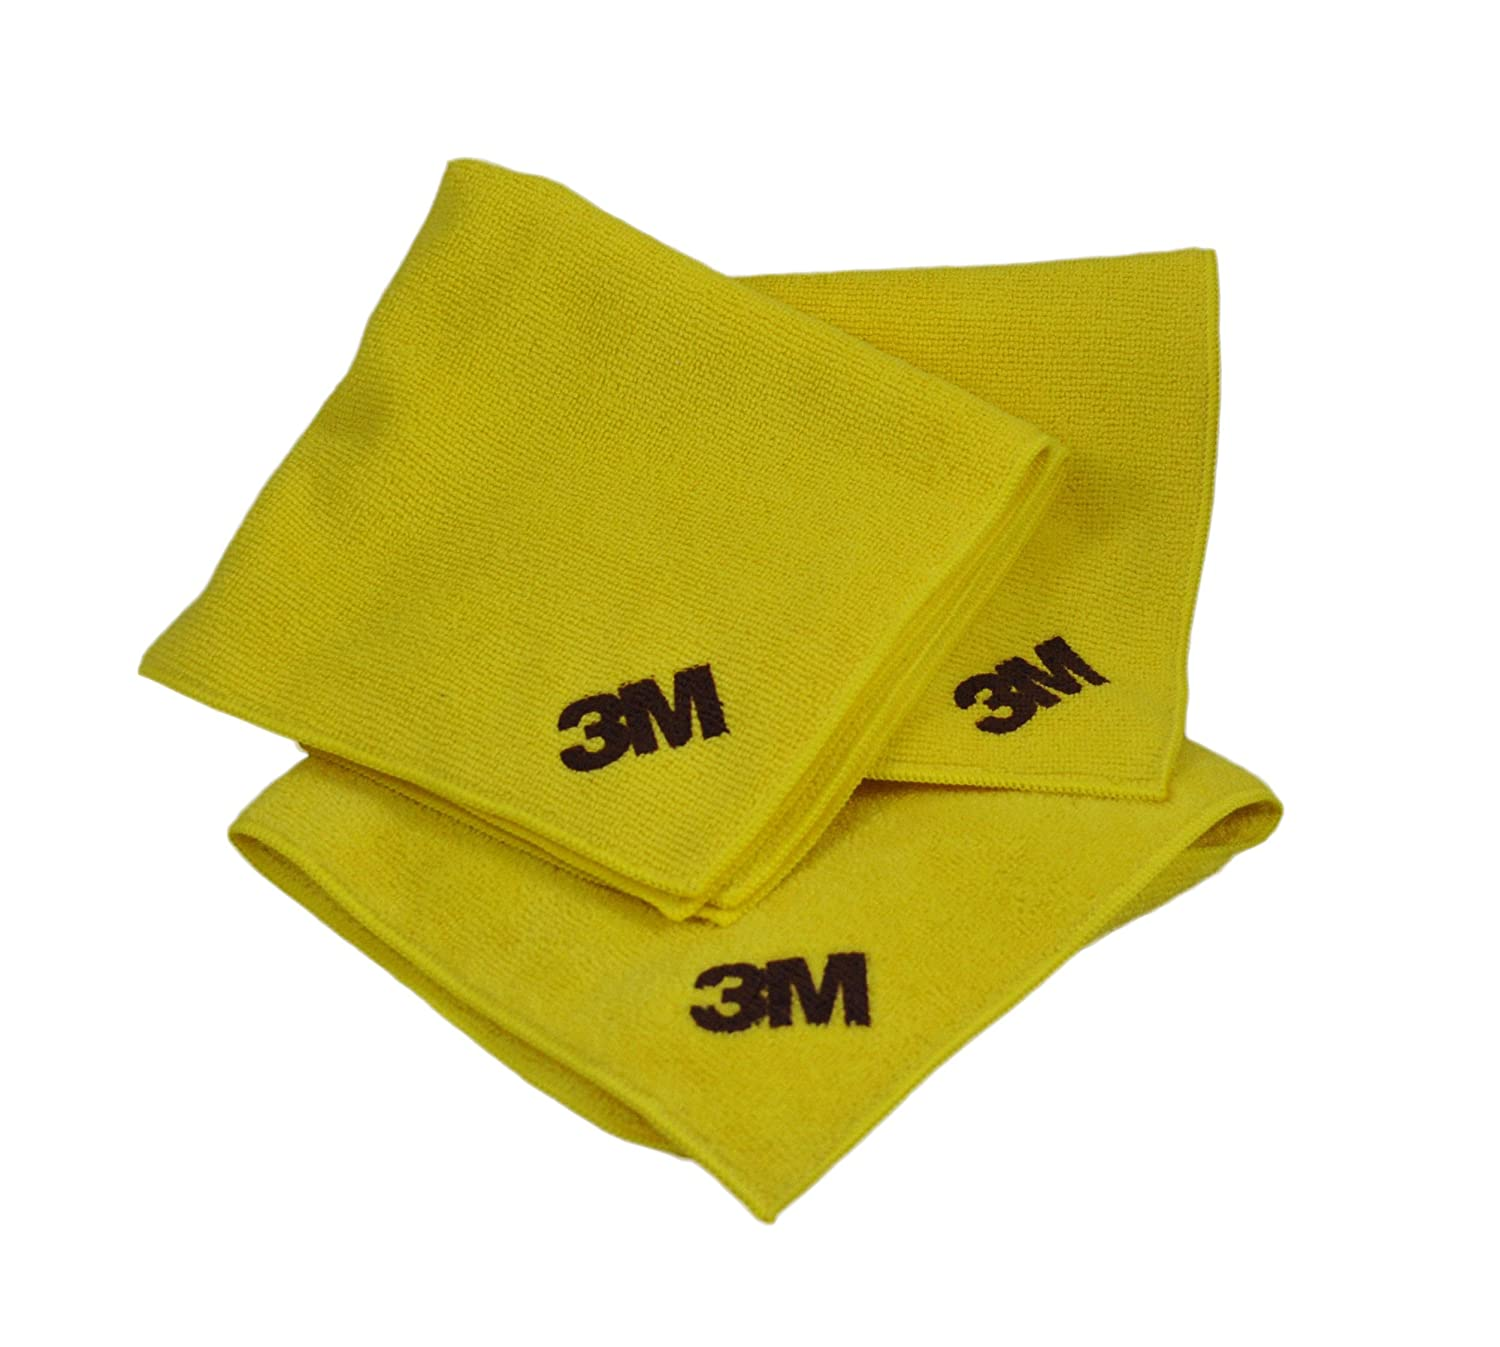 3M 5 Pack Detailing Cloths